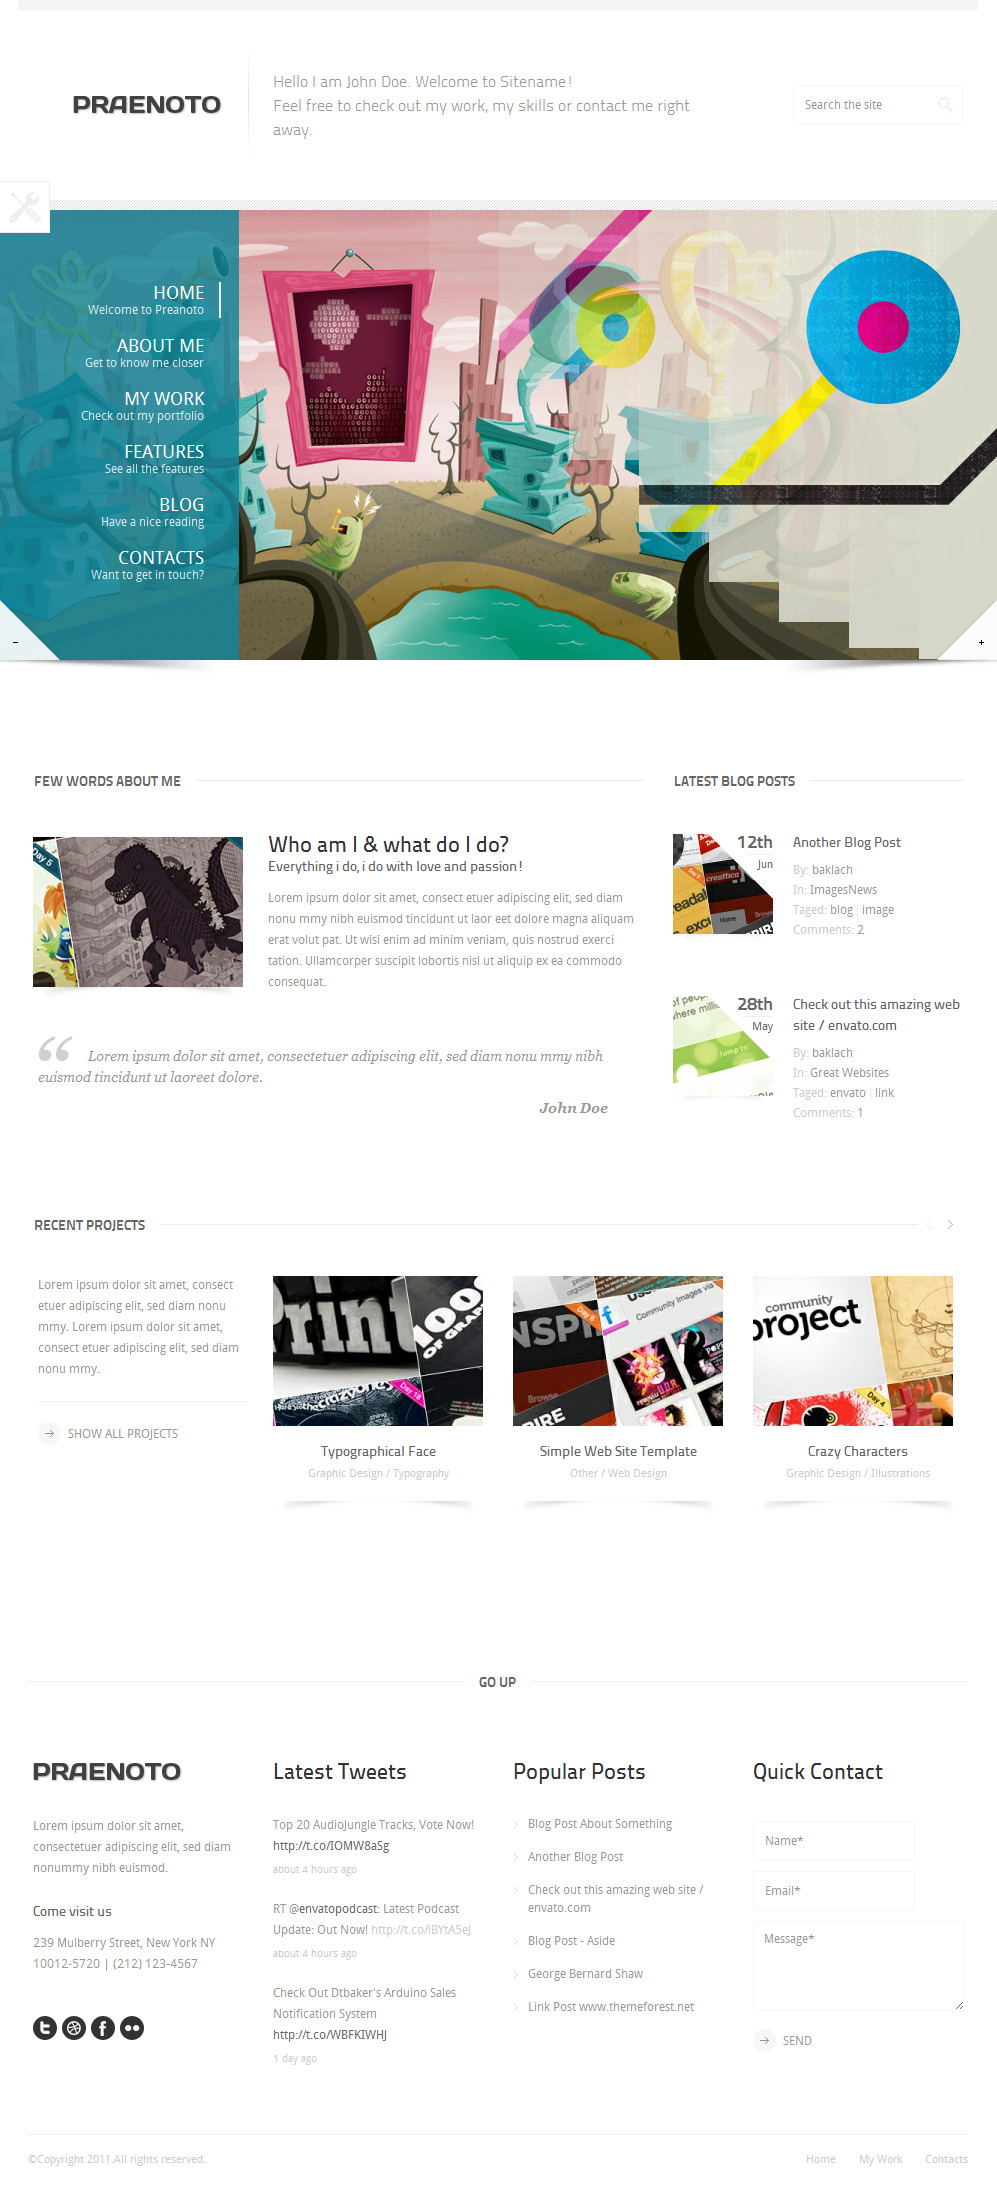 Praenoto - Clean & Minimalist WordPress Theme - Screenshot 2. Home page.